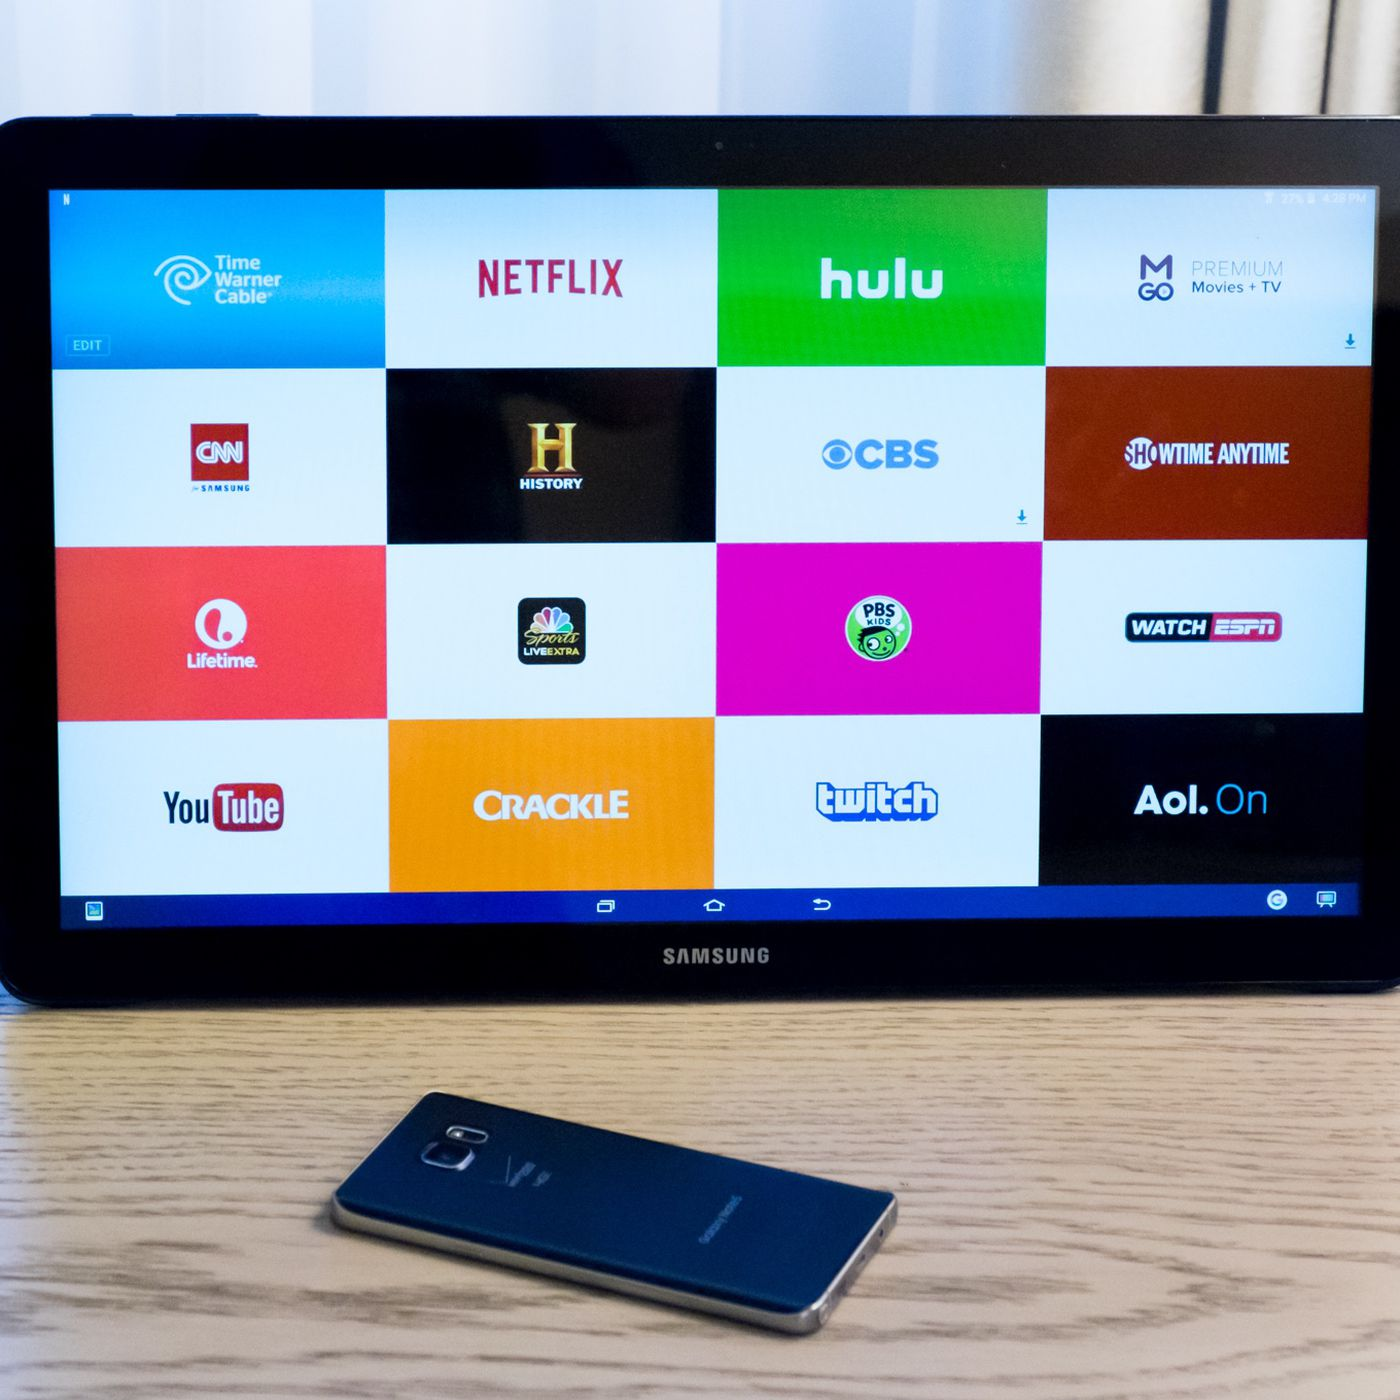 Samsung s Galaxy View is an enormous 18 inch tablet built for video binging The Verge